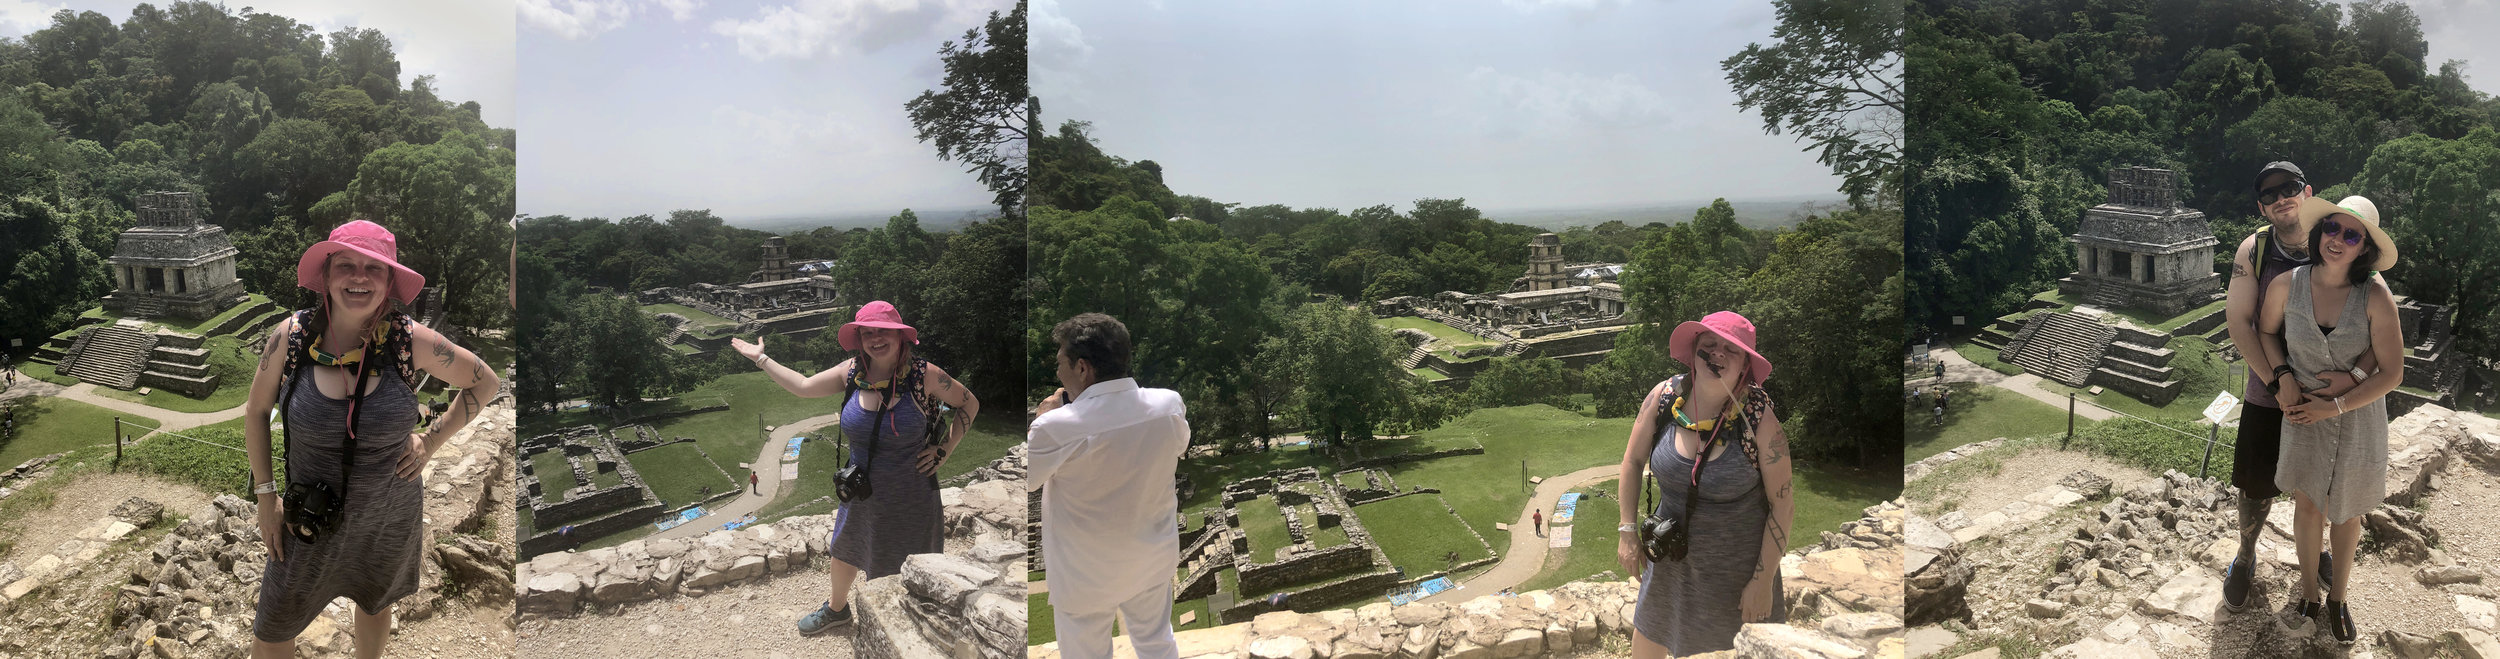 "We did it! Views from the Temple of the Holy Cross, Palenque: Me, super proud I did the stairs, with the Temple of the Sun behind and below; me again, proudly showing the best view in Palenque; how it REALLY feels to climb every damned staircase at a site in the blistering hazy heat and humidity of July in Chiapas; and our friends, Nick and Leah, doing a ""prom pose"" with the Temple of the Sun behind them. Jason skipped this part of the day - he was done with sun and heat and humidity."